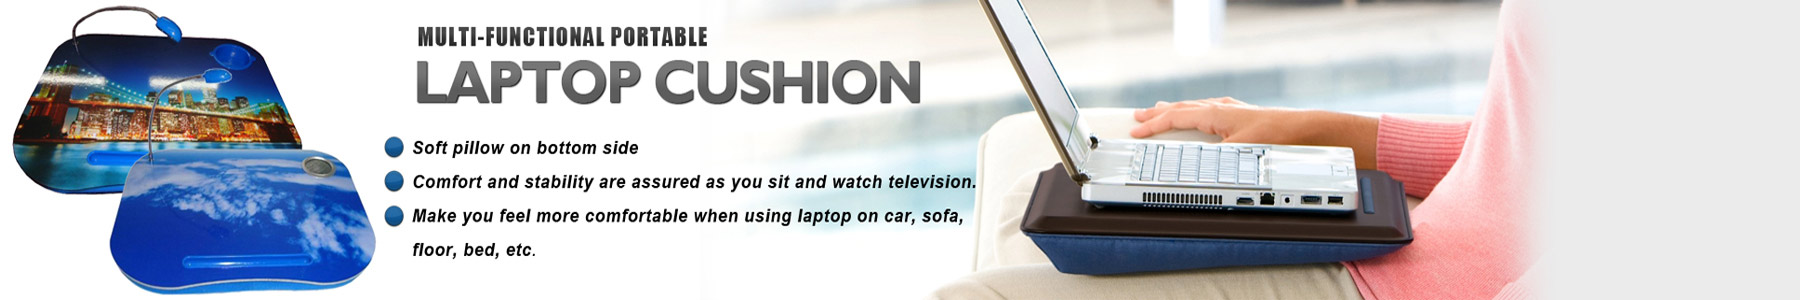 laptop-cushion